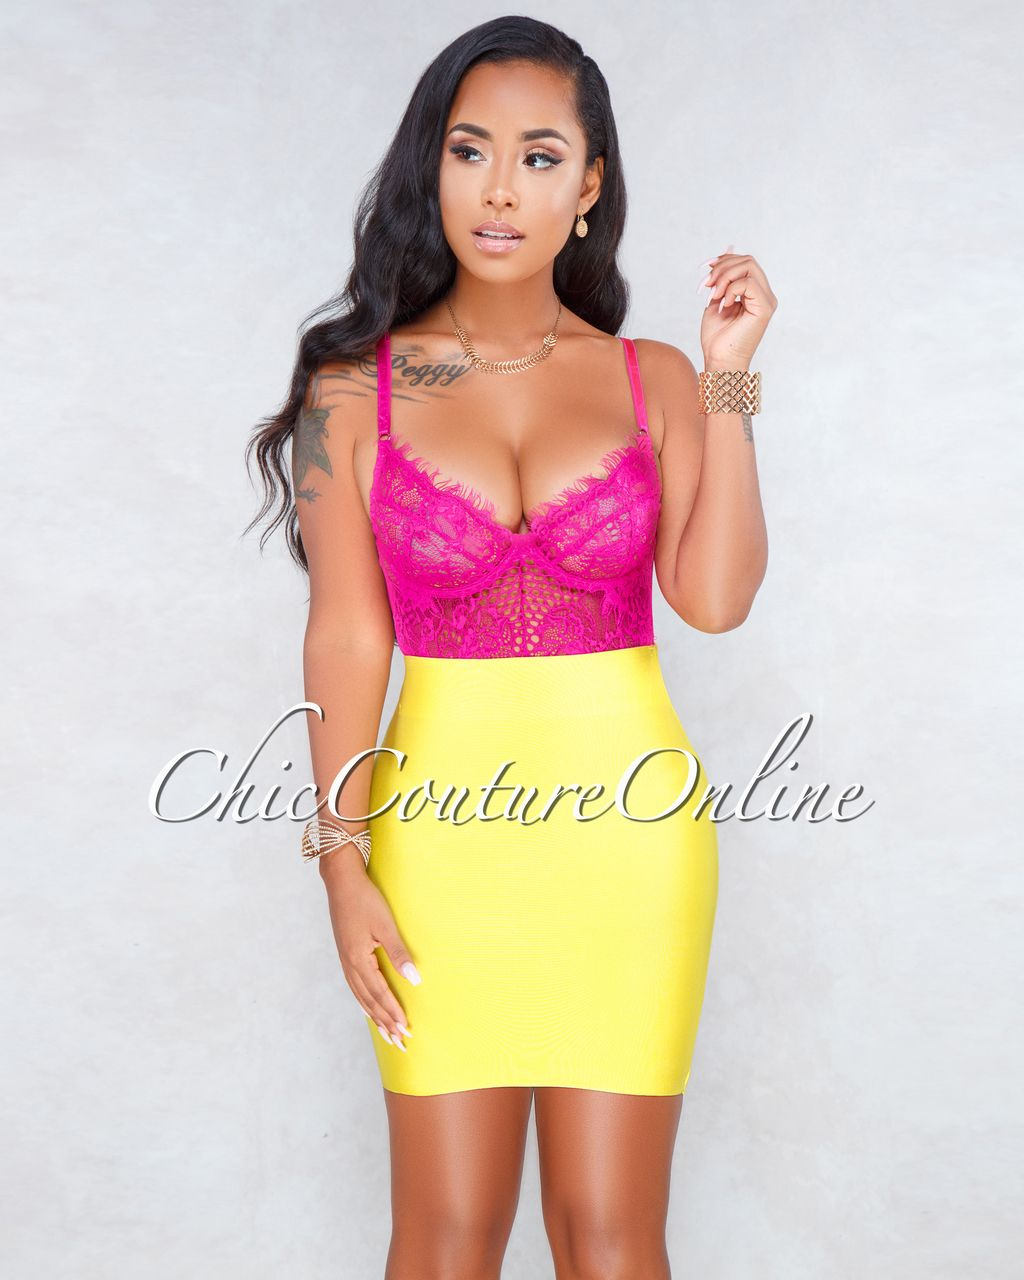 Chic Couture Online - Audria Hot Pink Sheer Lace Bodysuit 16d3f1cfd